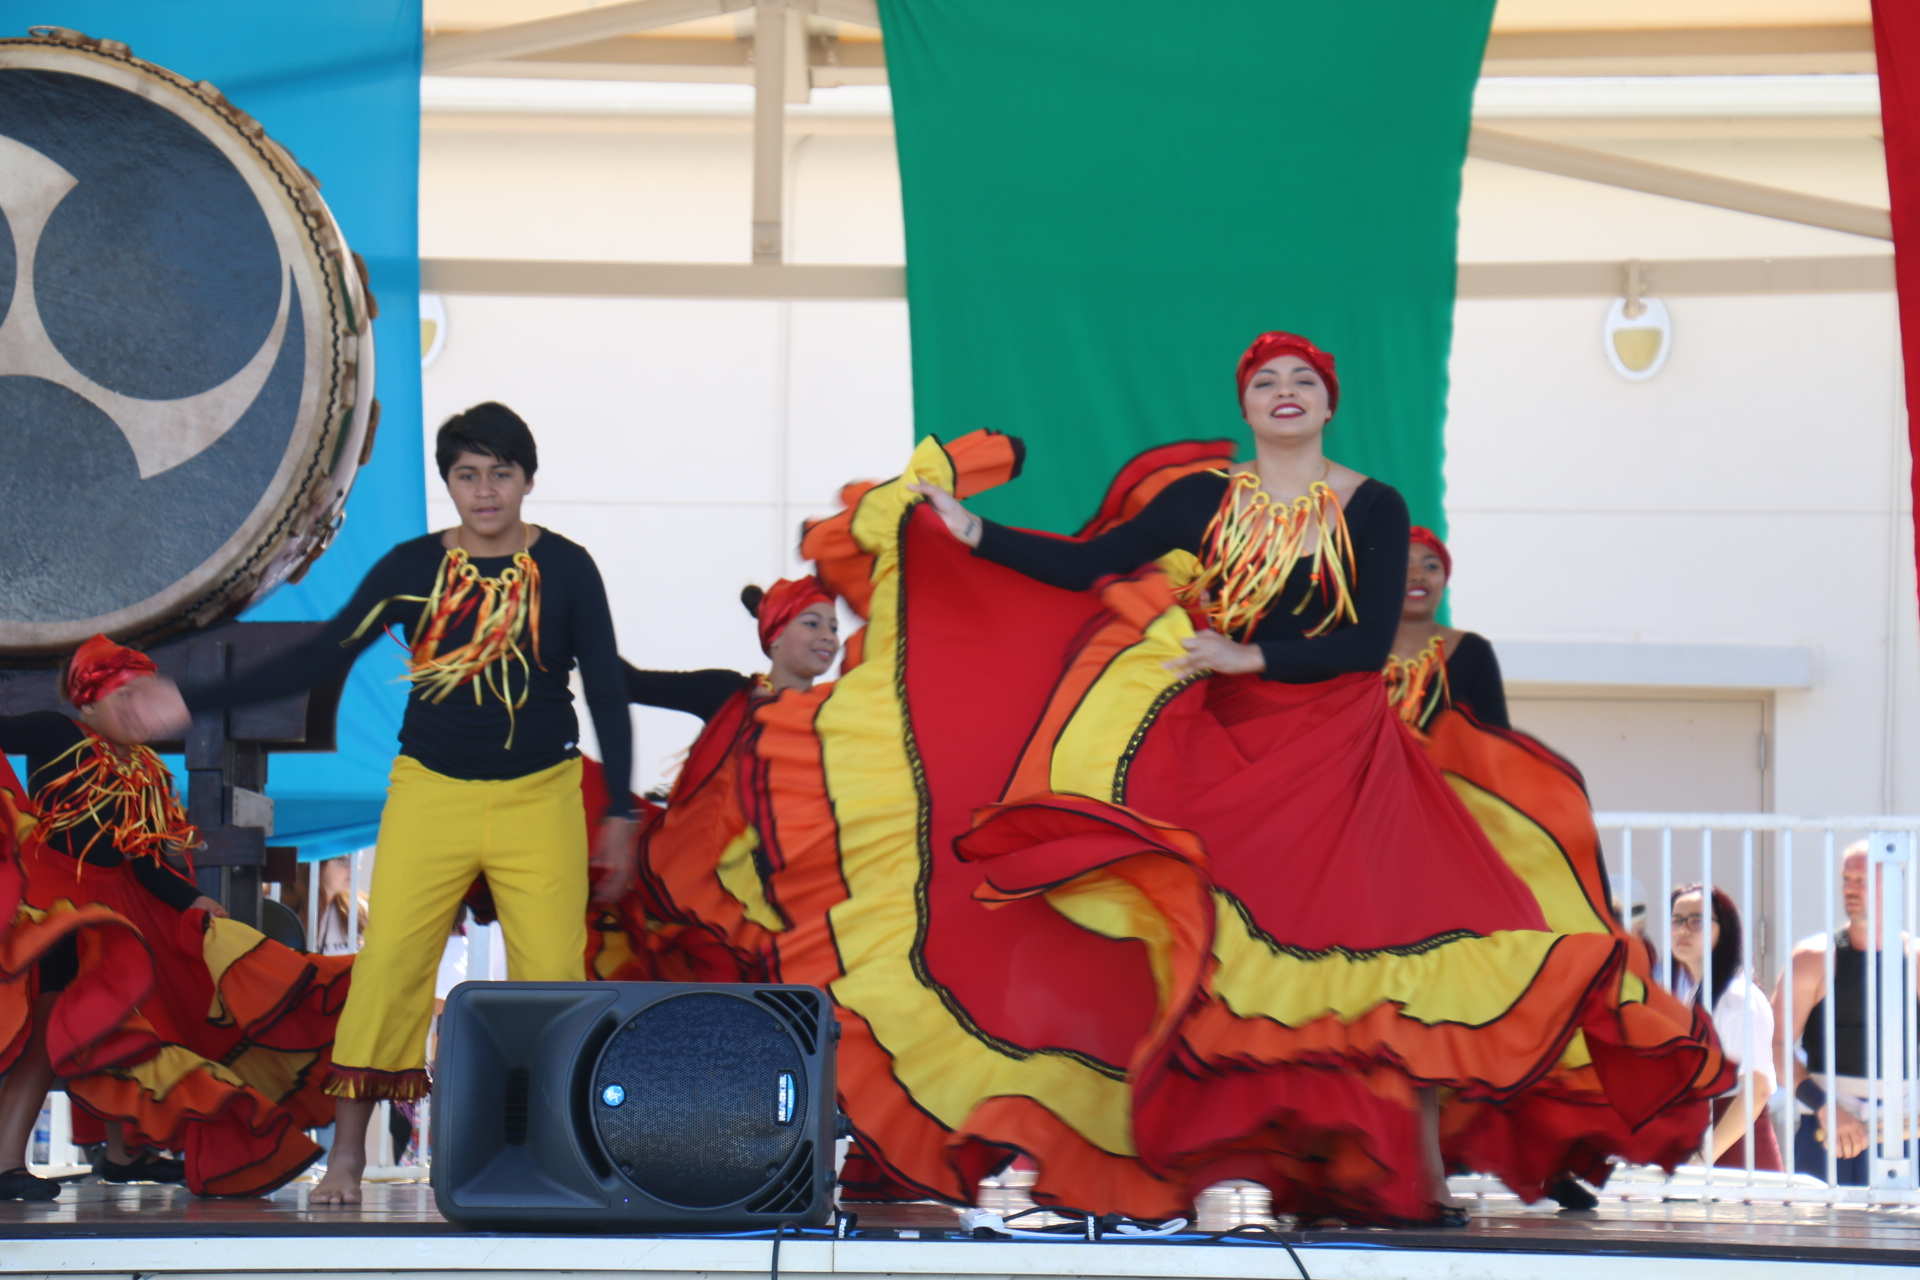 male and female dancers on stage in red, yellow and black costumes